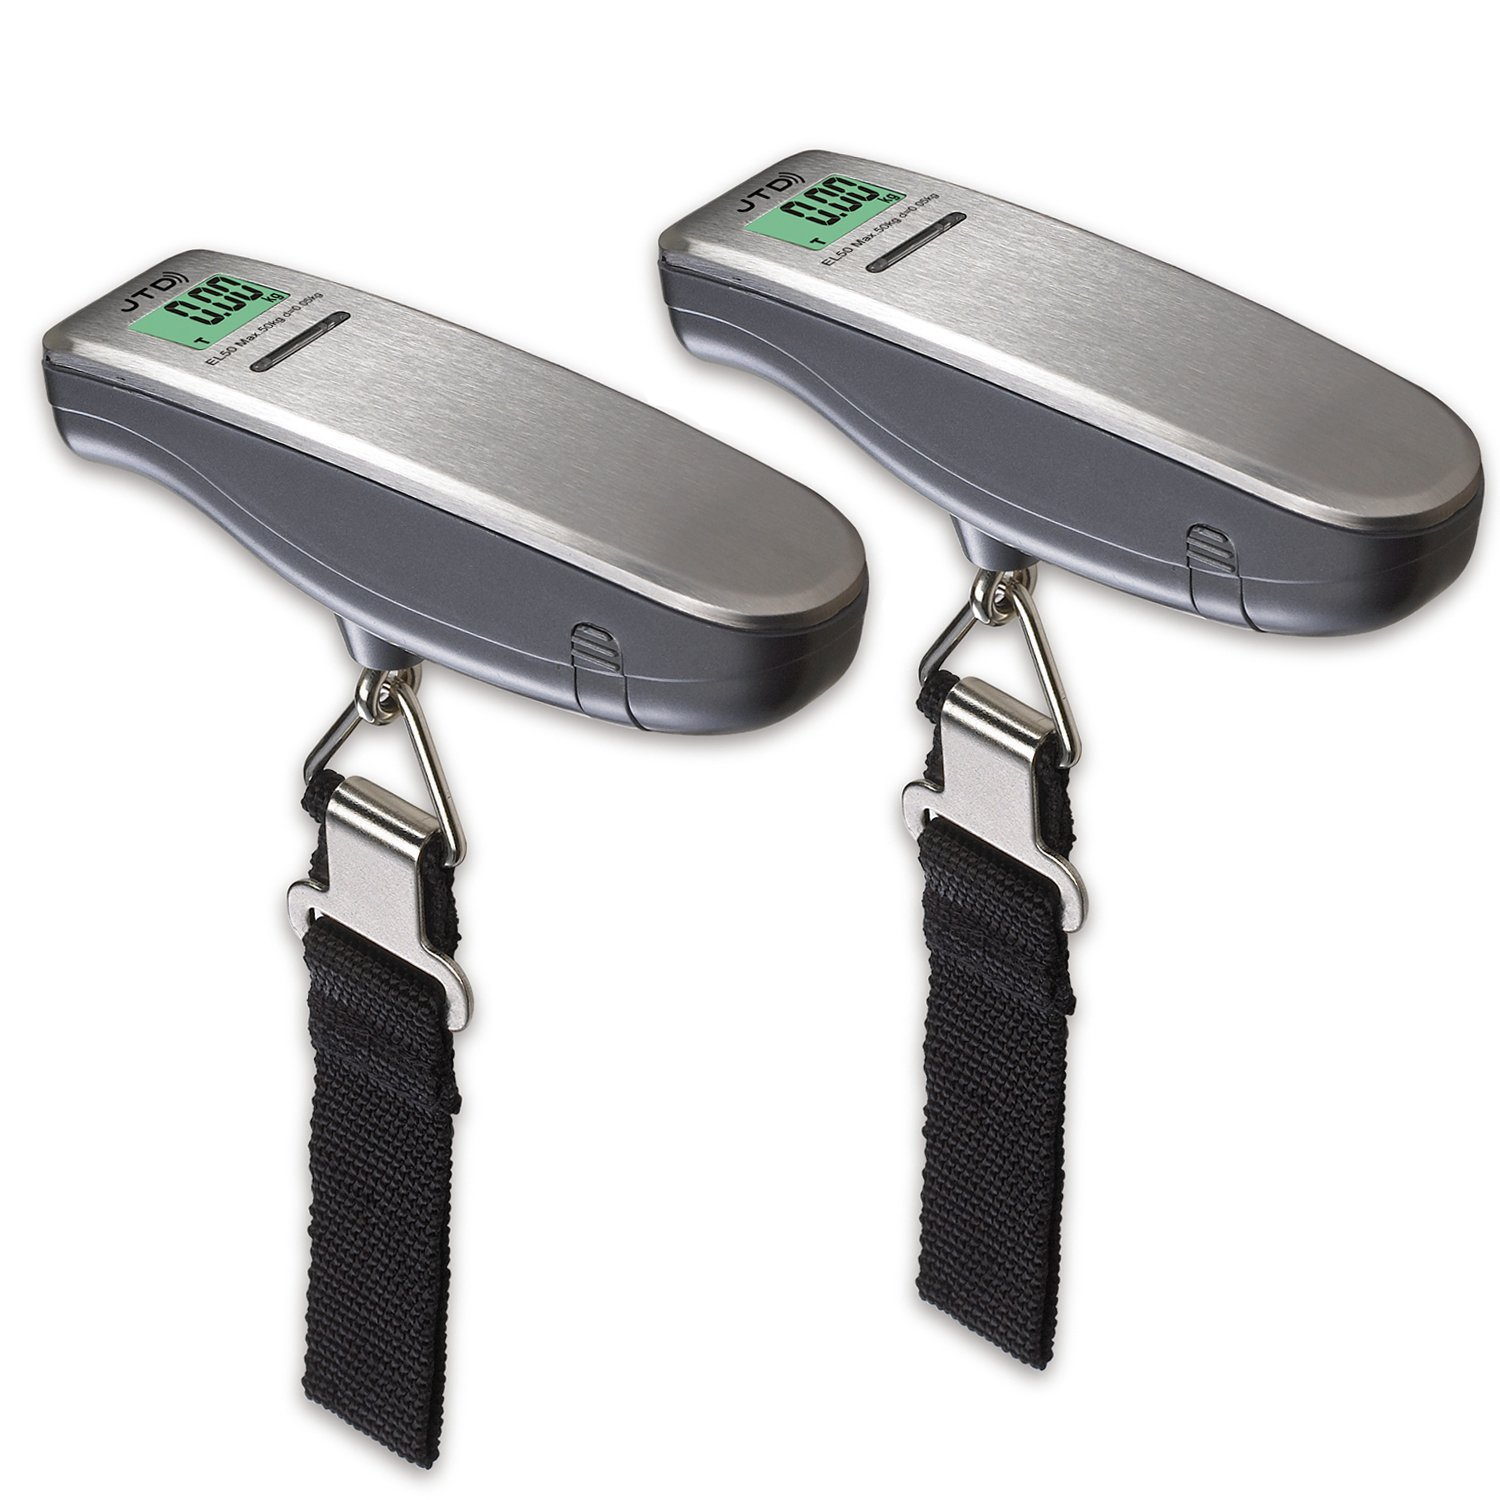 JTD ® 2-PACK Digital Hanging Luggage Scale Large LCD Display 110 LB for Travel and Home Use (Silver)